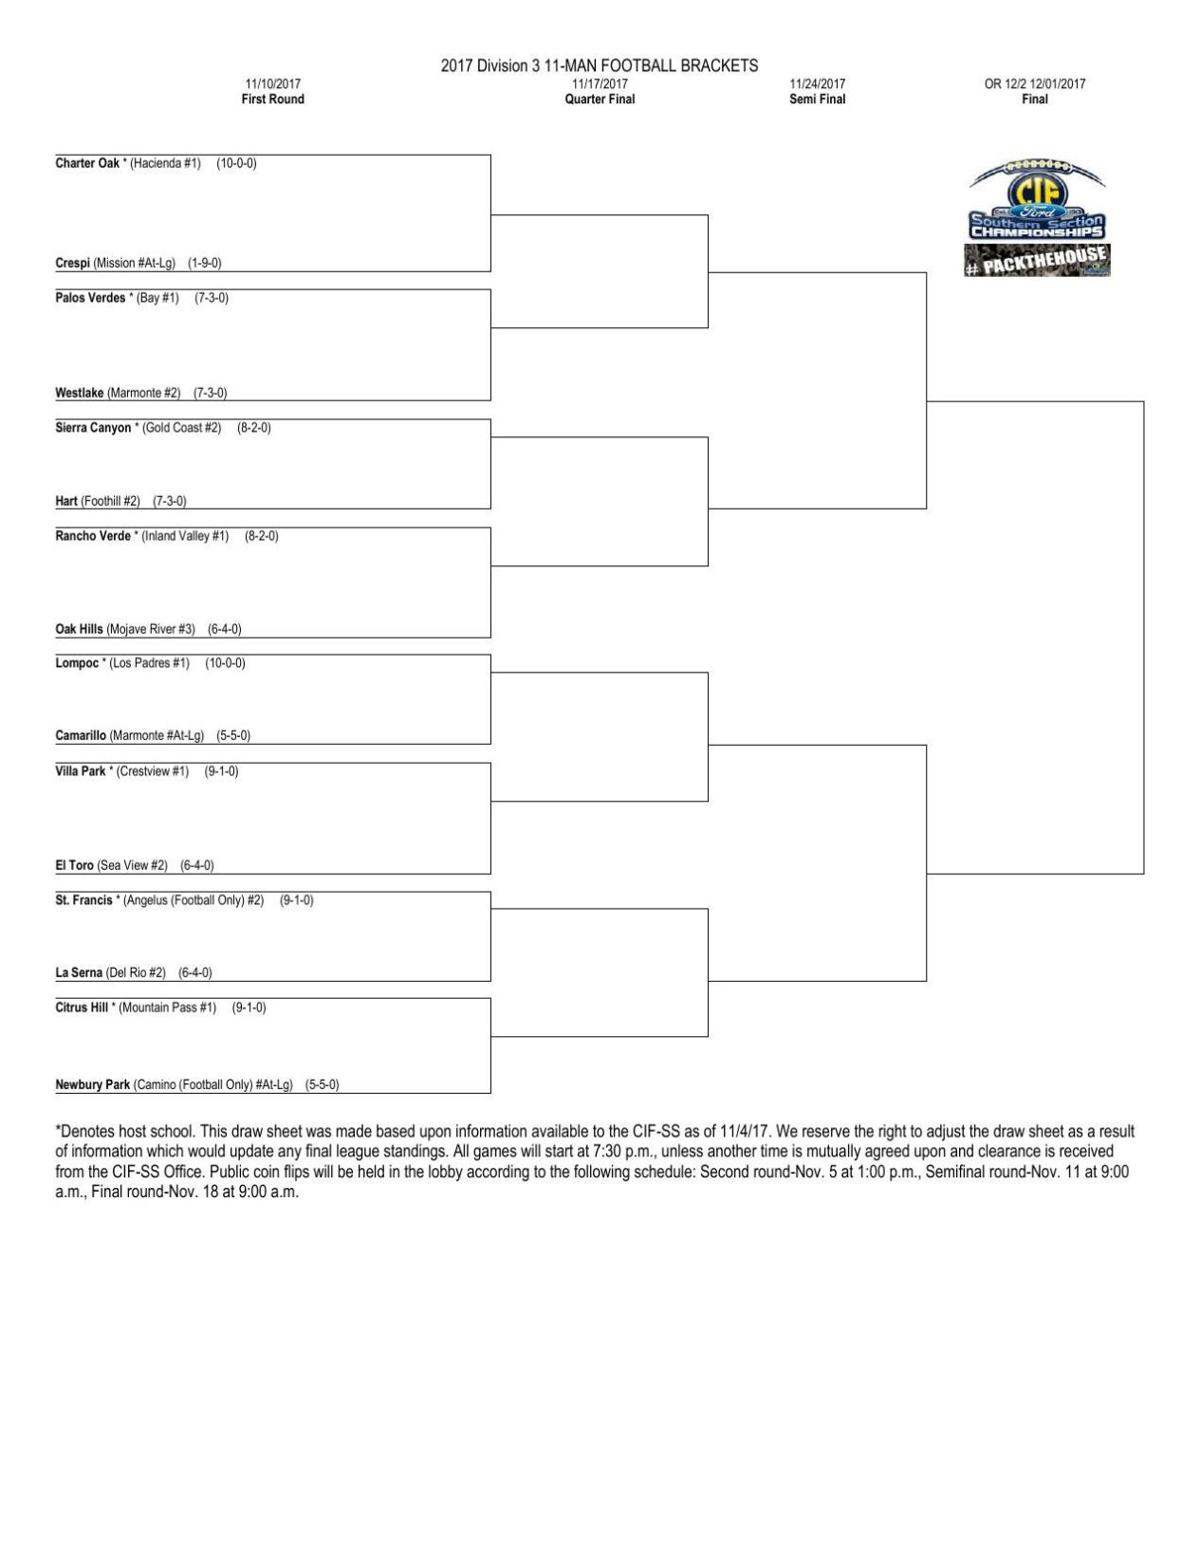 Lompoc's road in Division 3